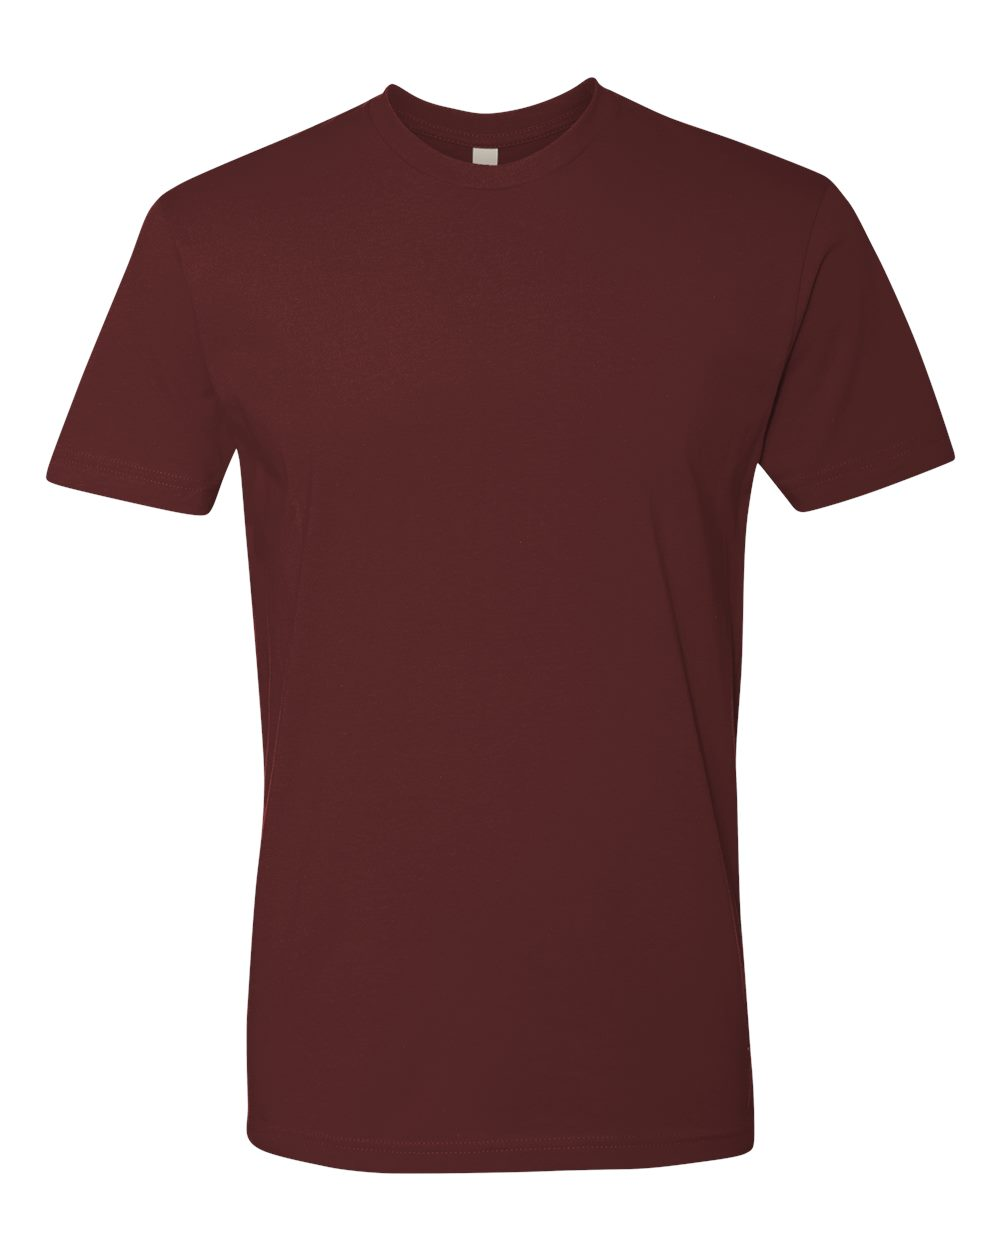 Next_Level_3600_Maroon_Front_High.jpg